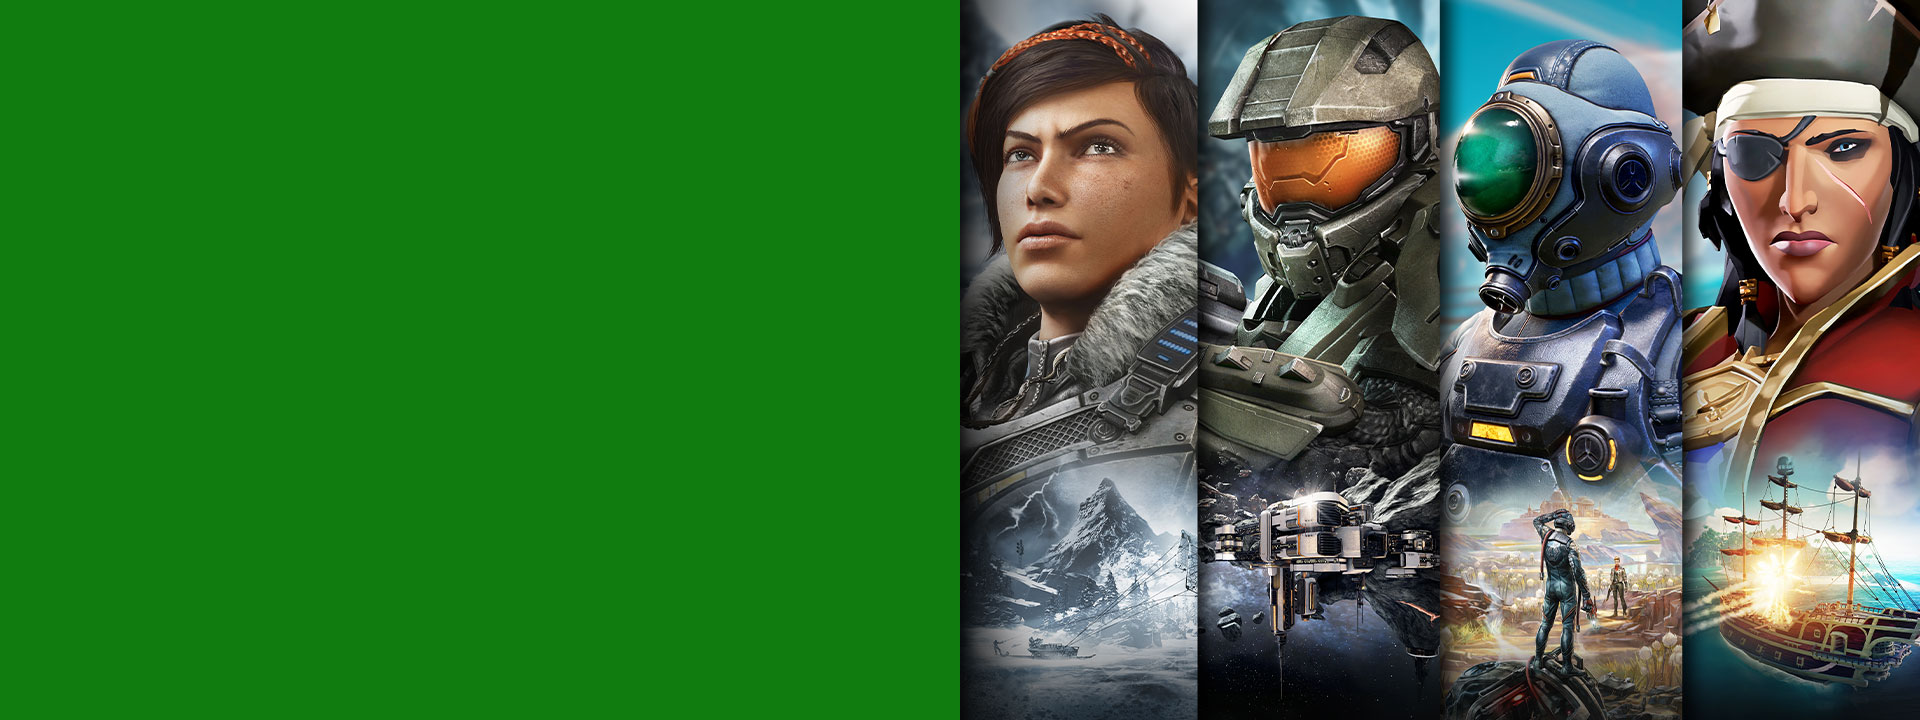 Xbox Game Pass-Spielcharaktere aus Gears 5, Halo, The Outer Worlds und Sea of Thieves.